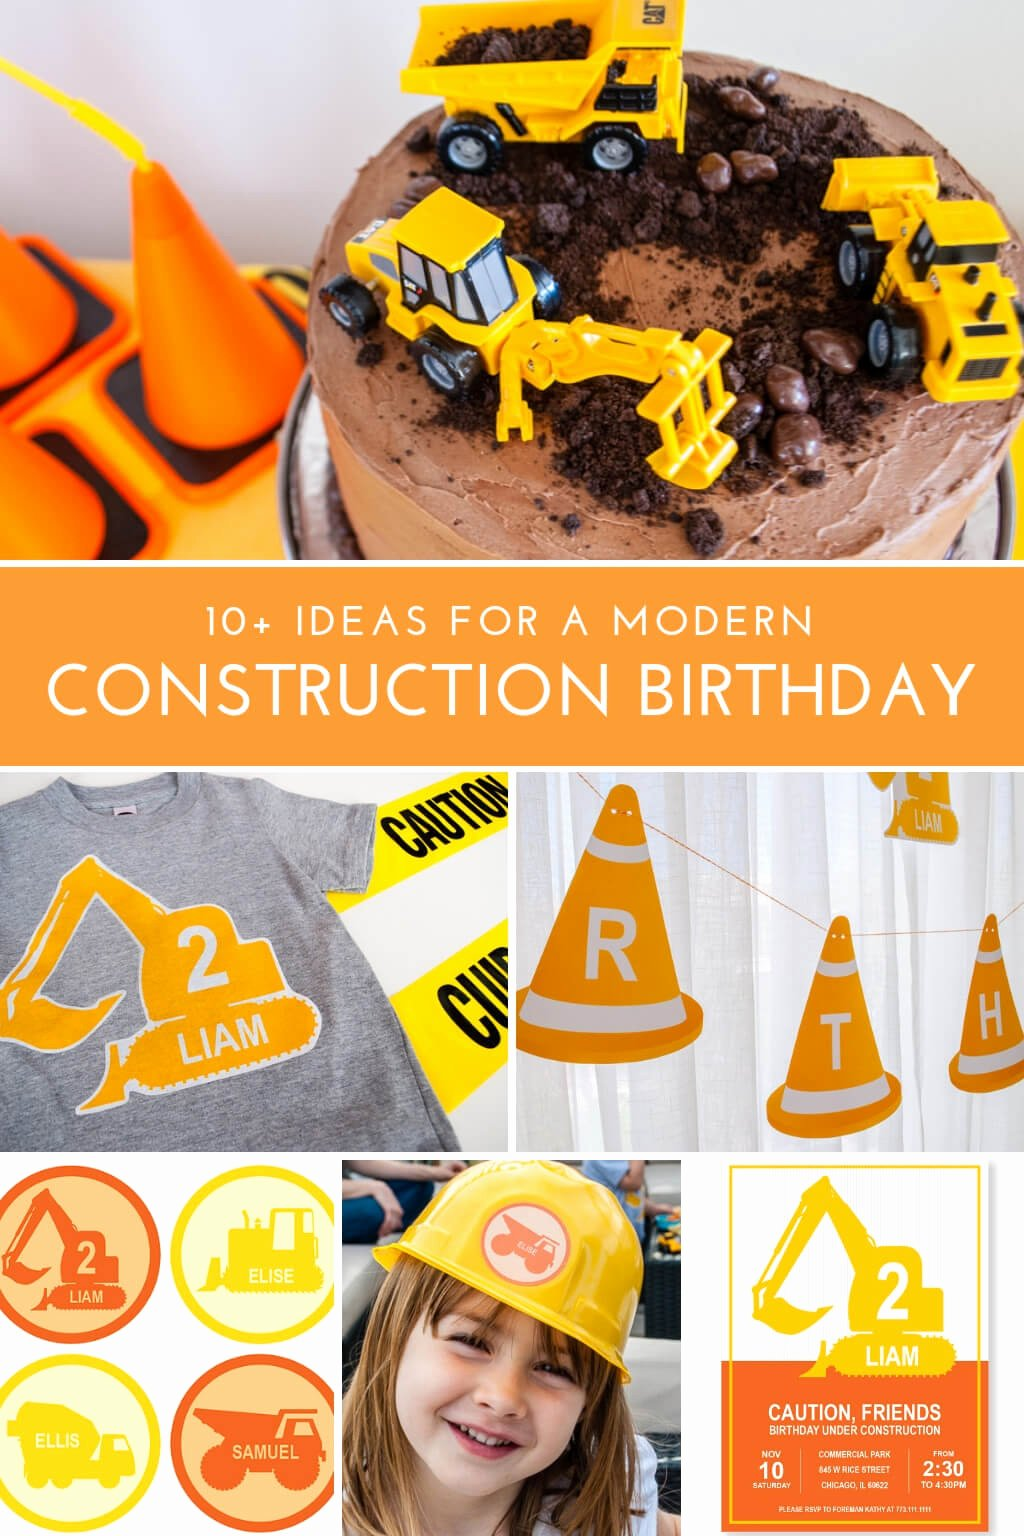 Construction Birthday Decoration Ideas Luxury Construction Birthday Party Ideas Modern Decorations